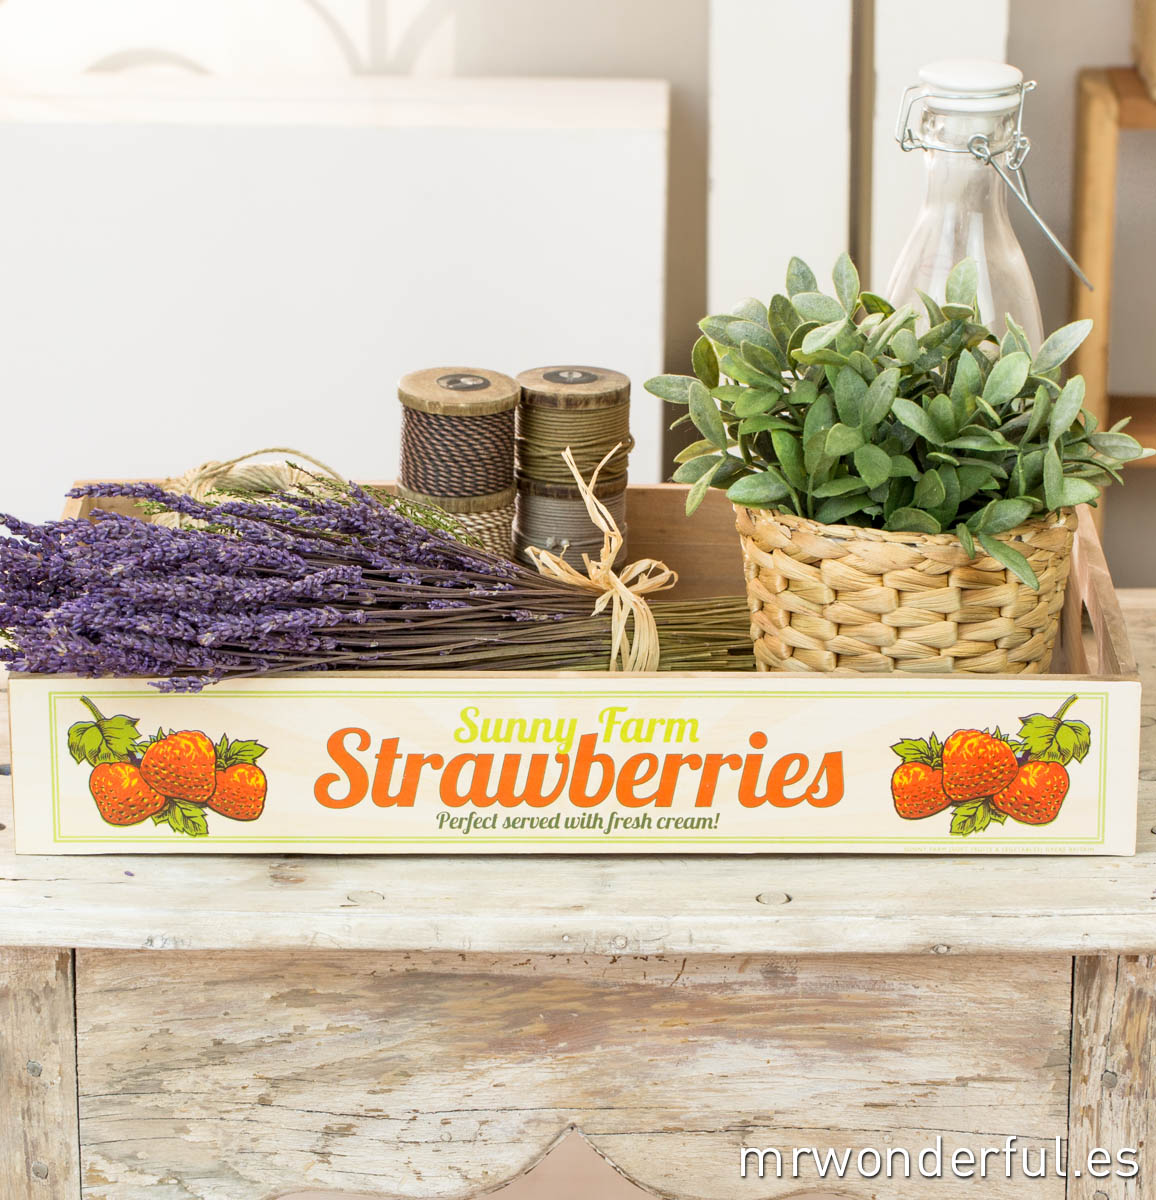 23783_caja-madera-decoracion_strawberries-8